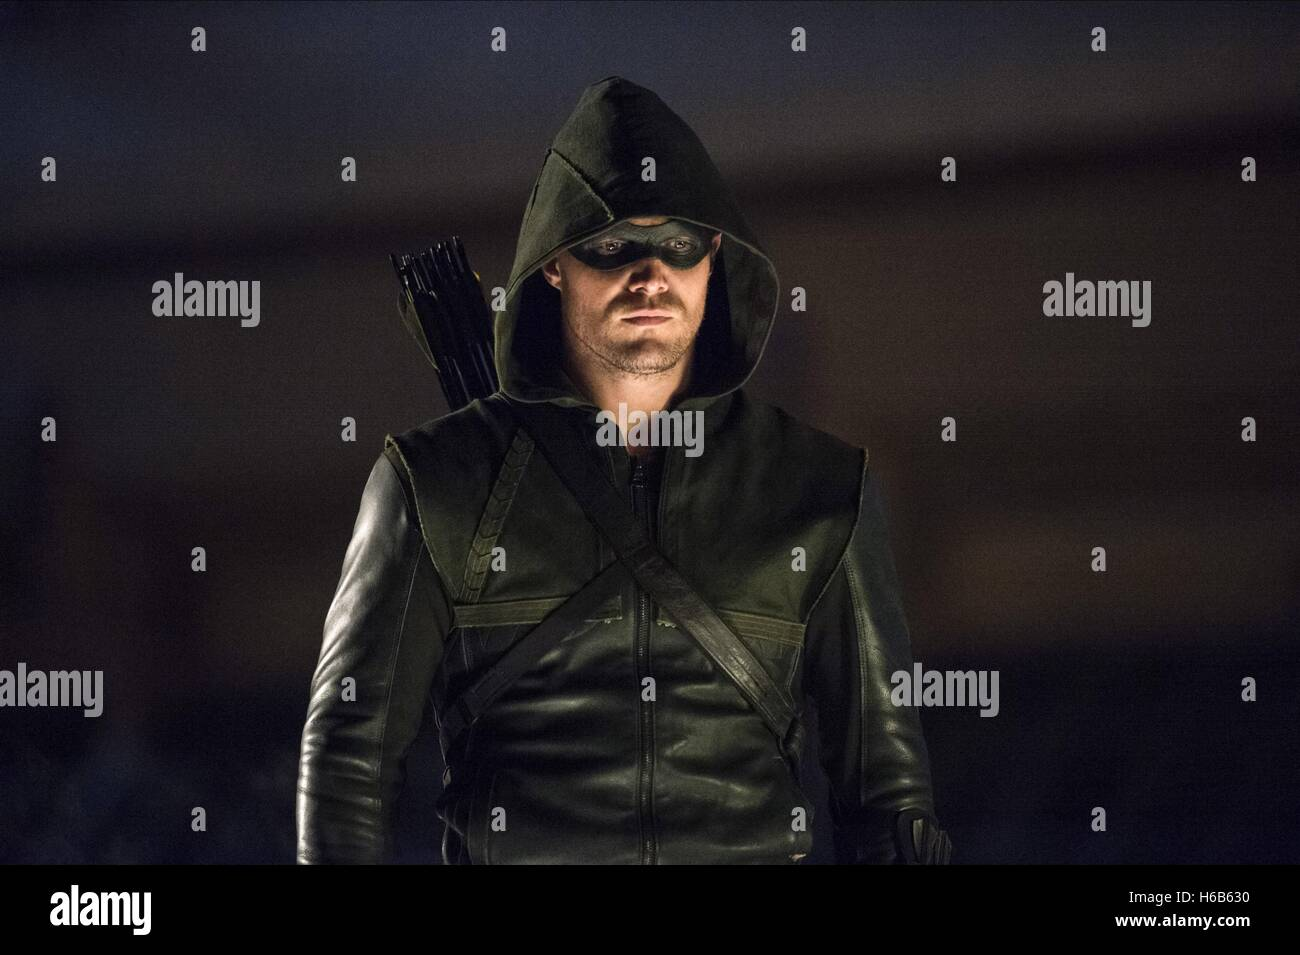 stephen amell as oliver queen television programme tv